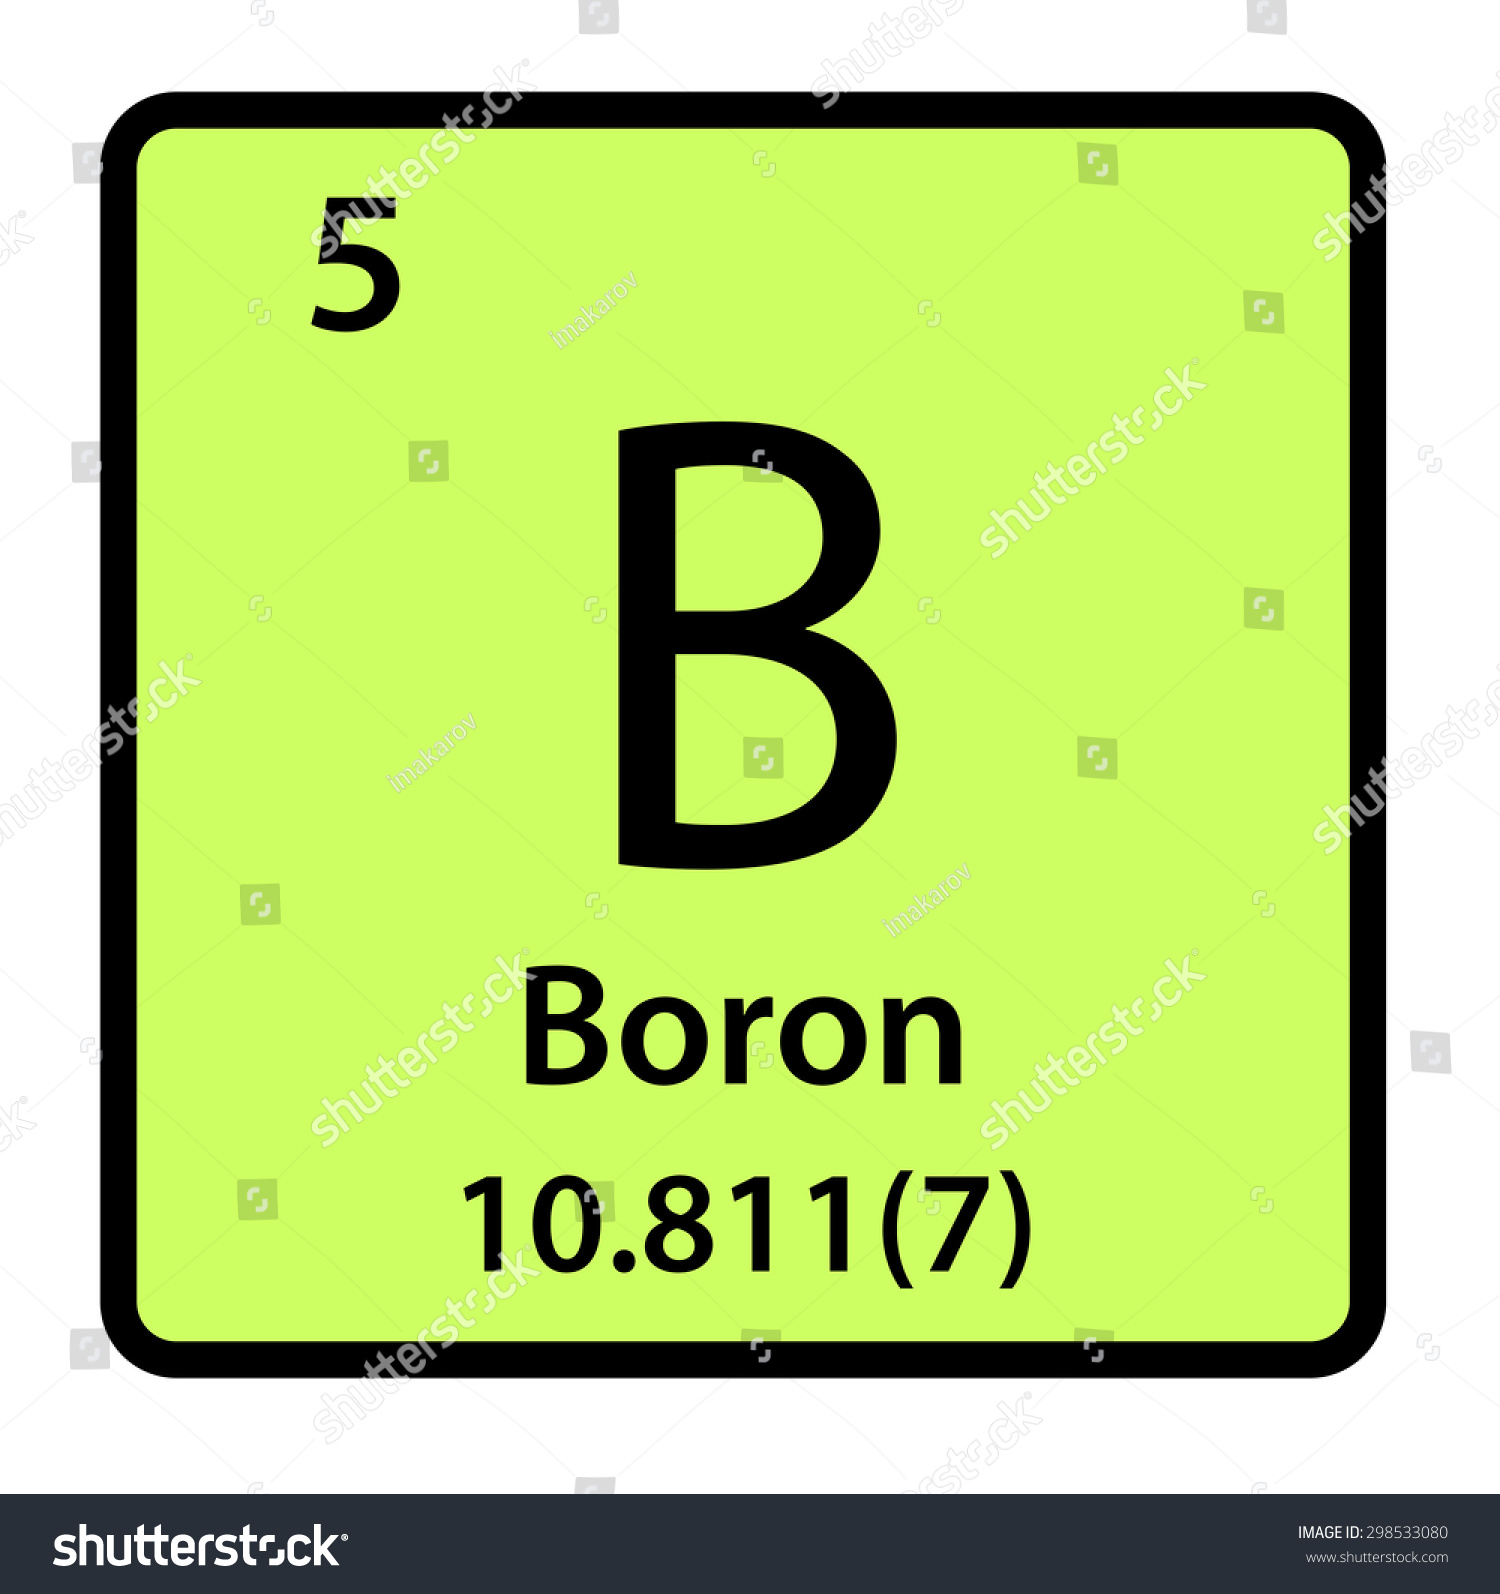 Element boron periodic table stock illustration 298533080 element boron of the periodic table gamestrikefo Image collections